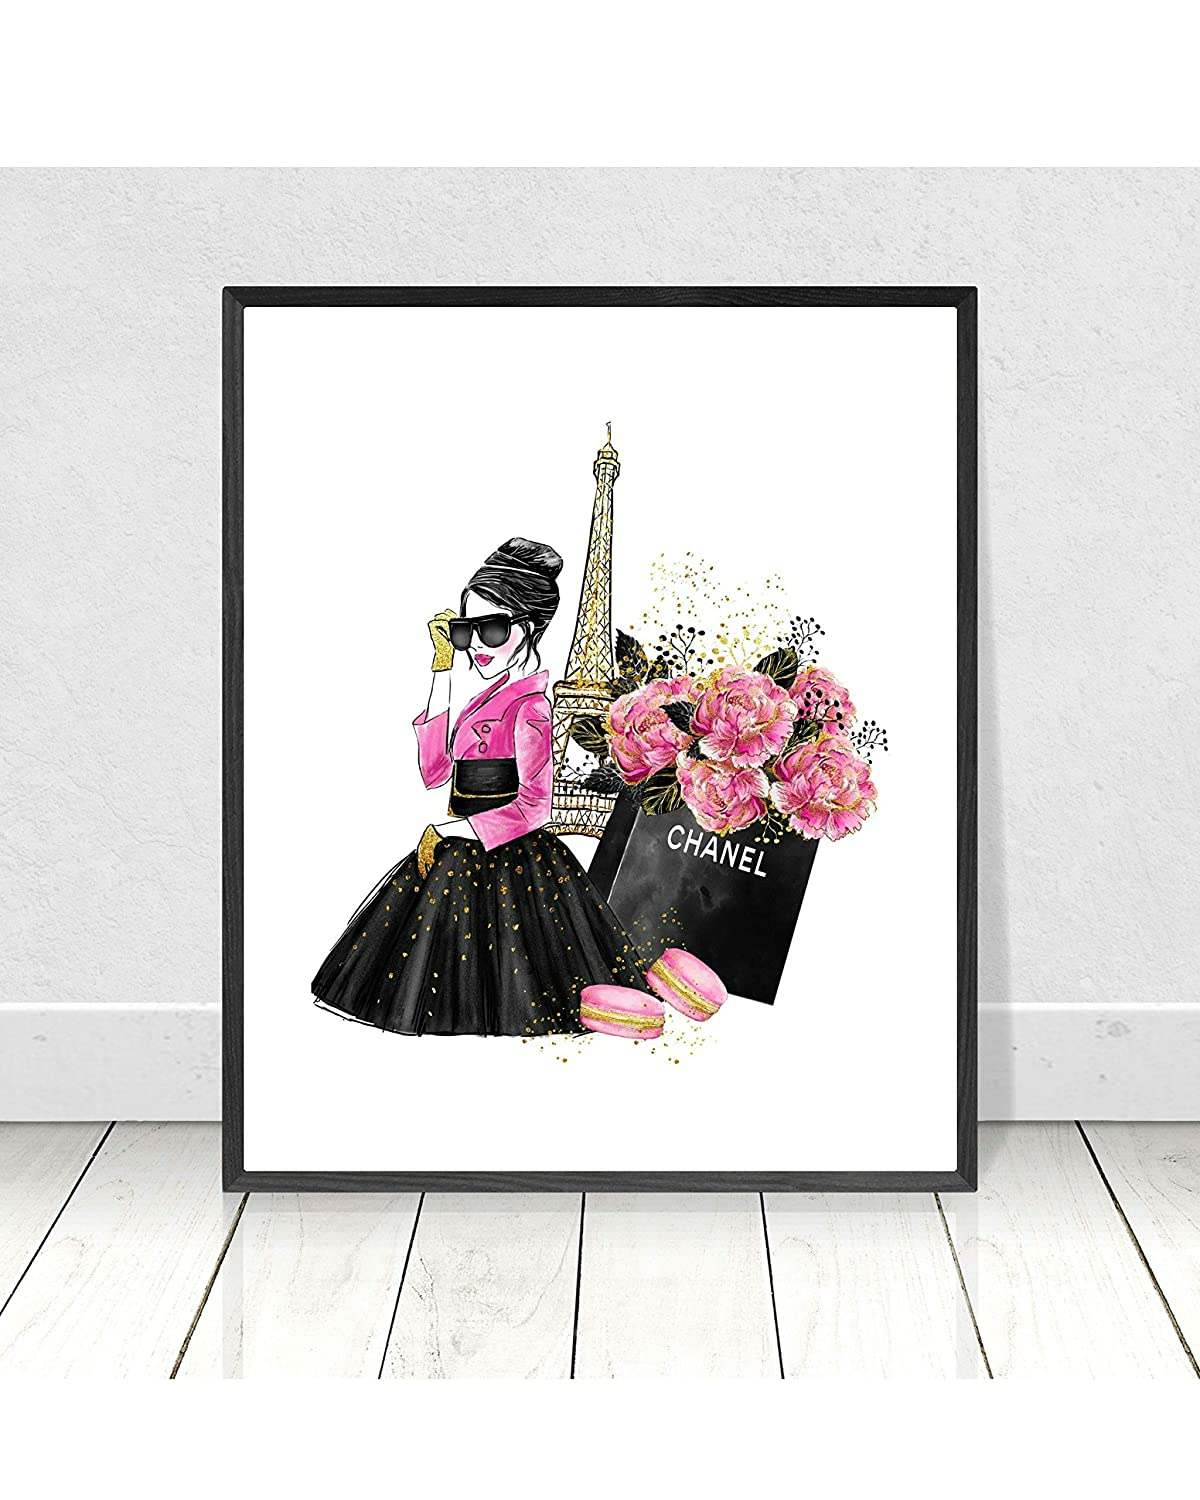 graphic relating to Chanel Printable identified as : King65irginia Chanel Print Chanel Prints Chanel